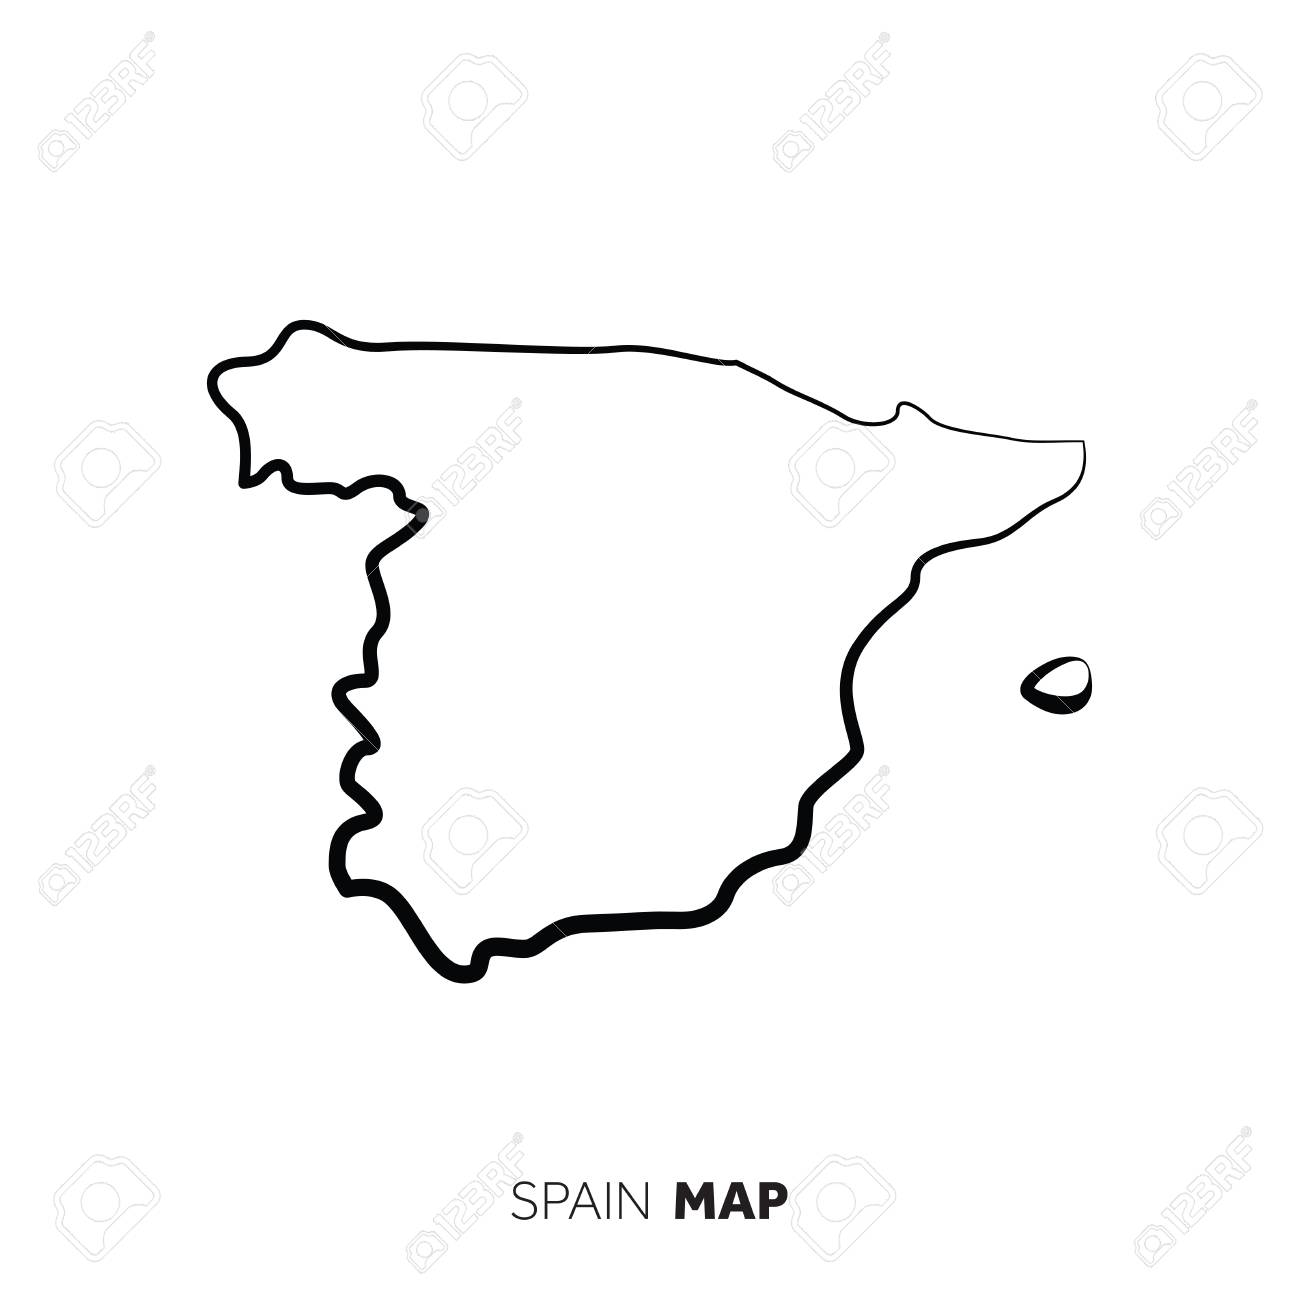 Map Of Spain Vector Free.Spain Vector Country Map Outline Black Line On White Background